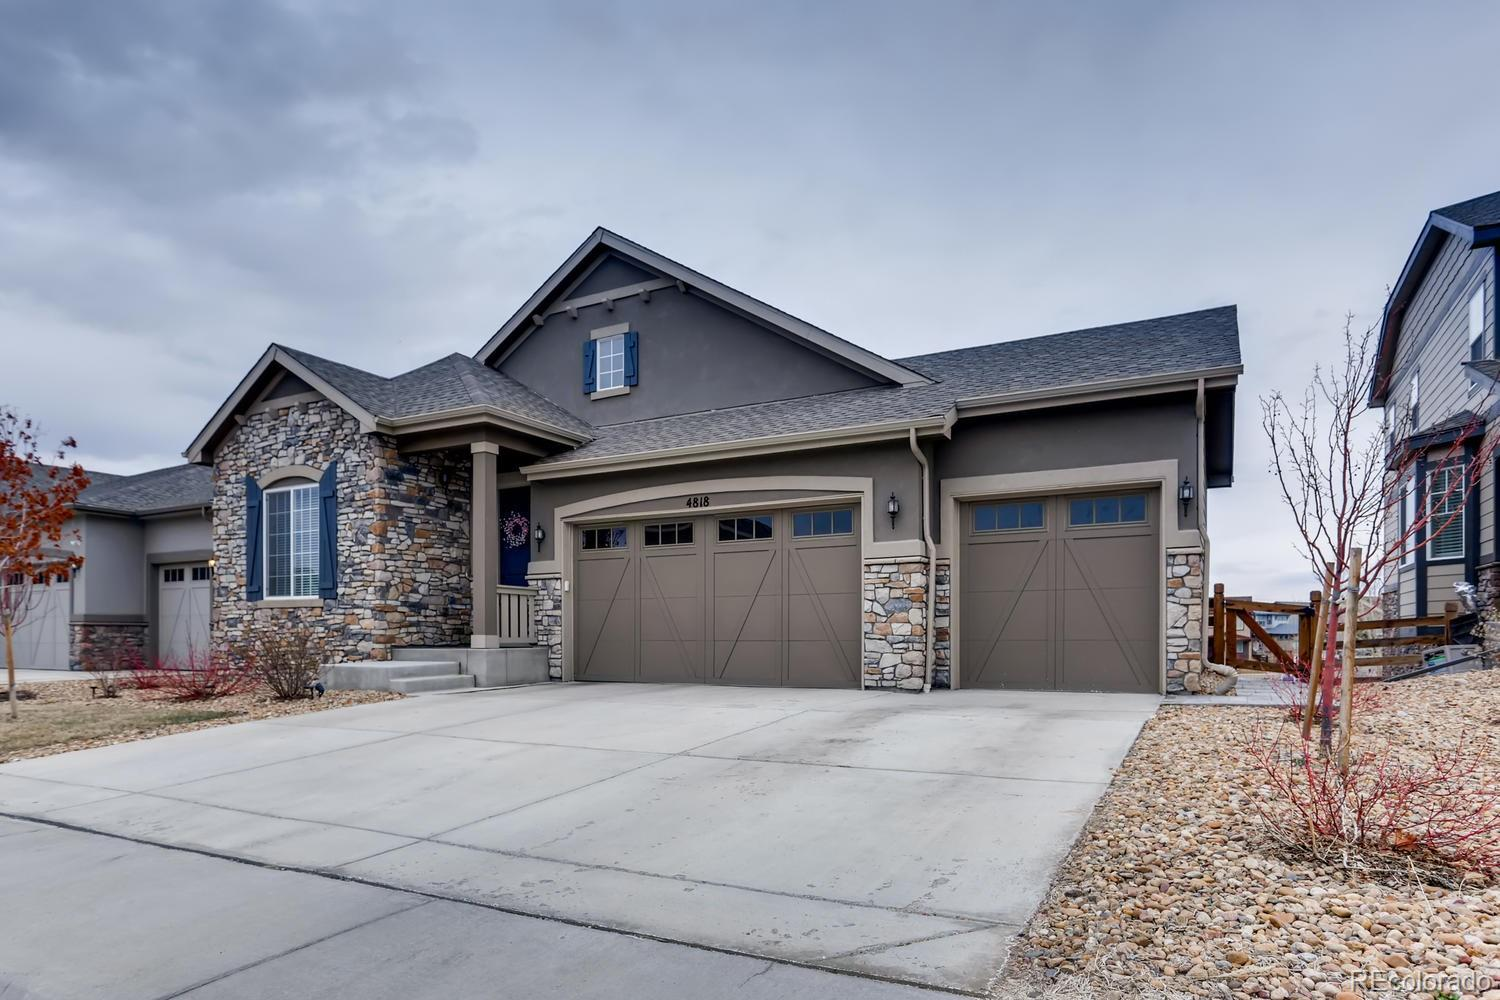 4818 S Netherland Street Property Photo - Centennial, CO real estate listing